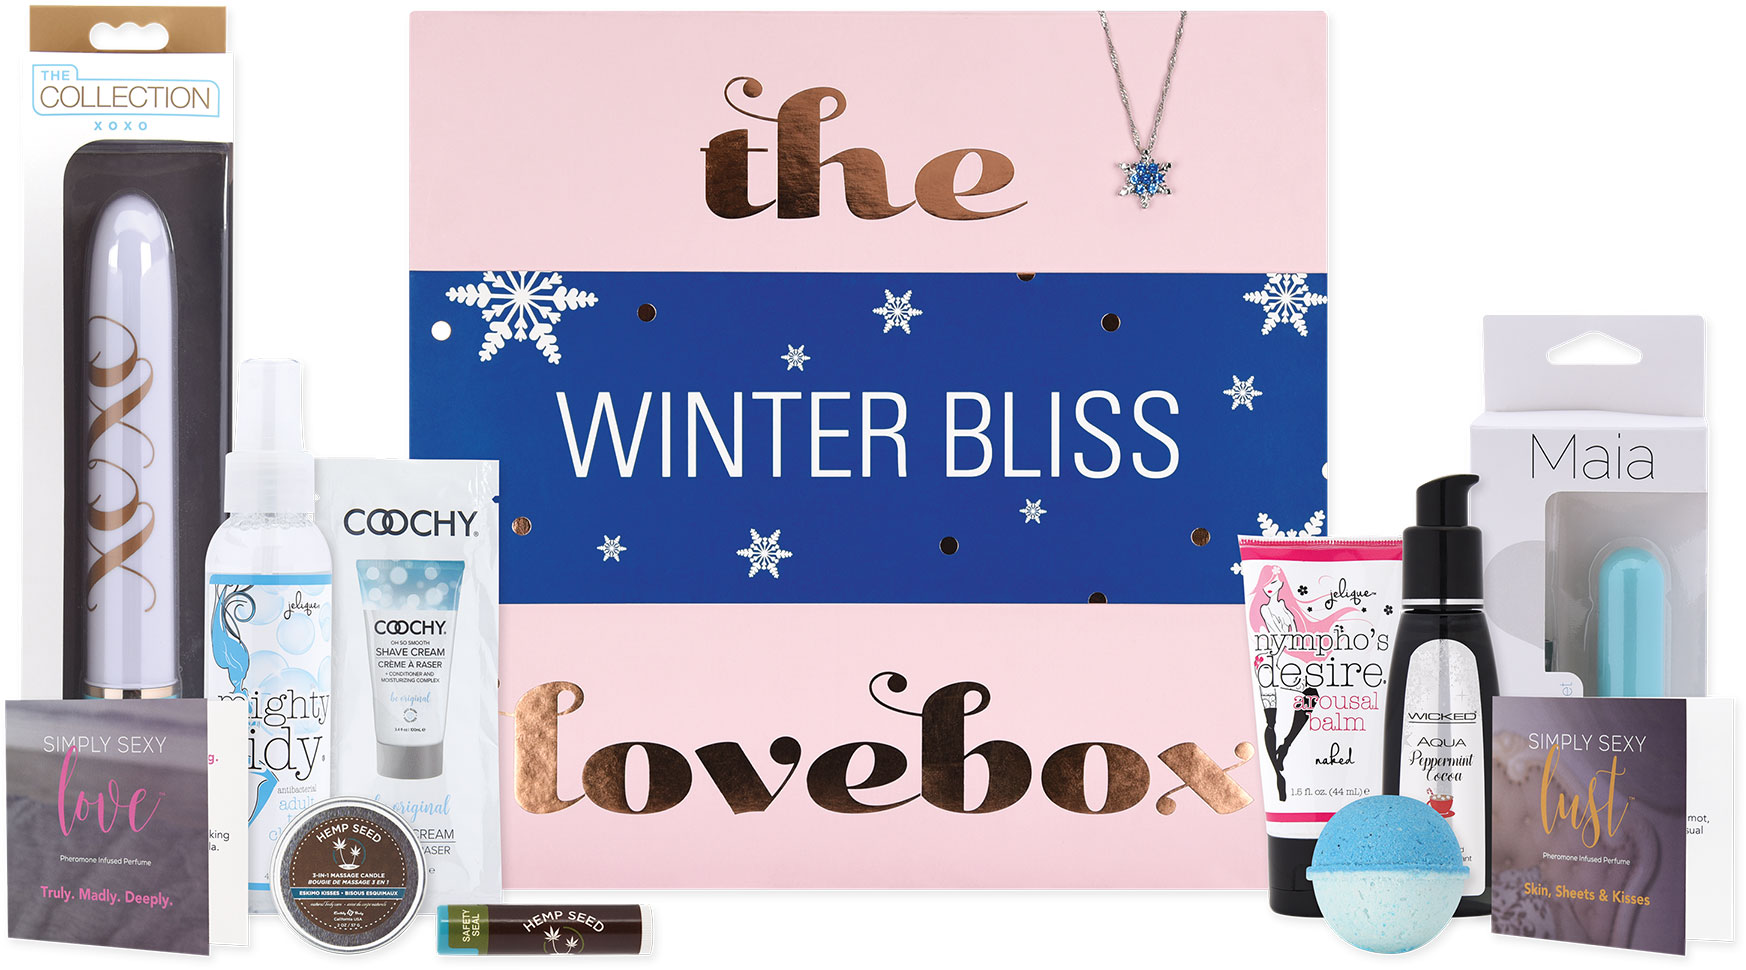 Lovebox Curated Collection Of Pleasure Products - Winter Bliss - Contents